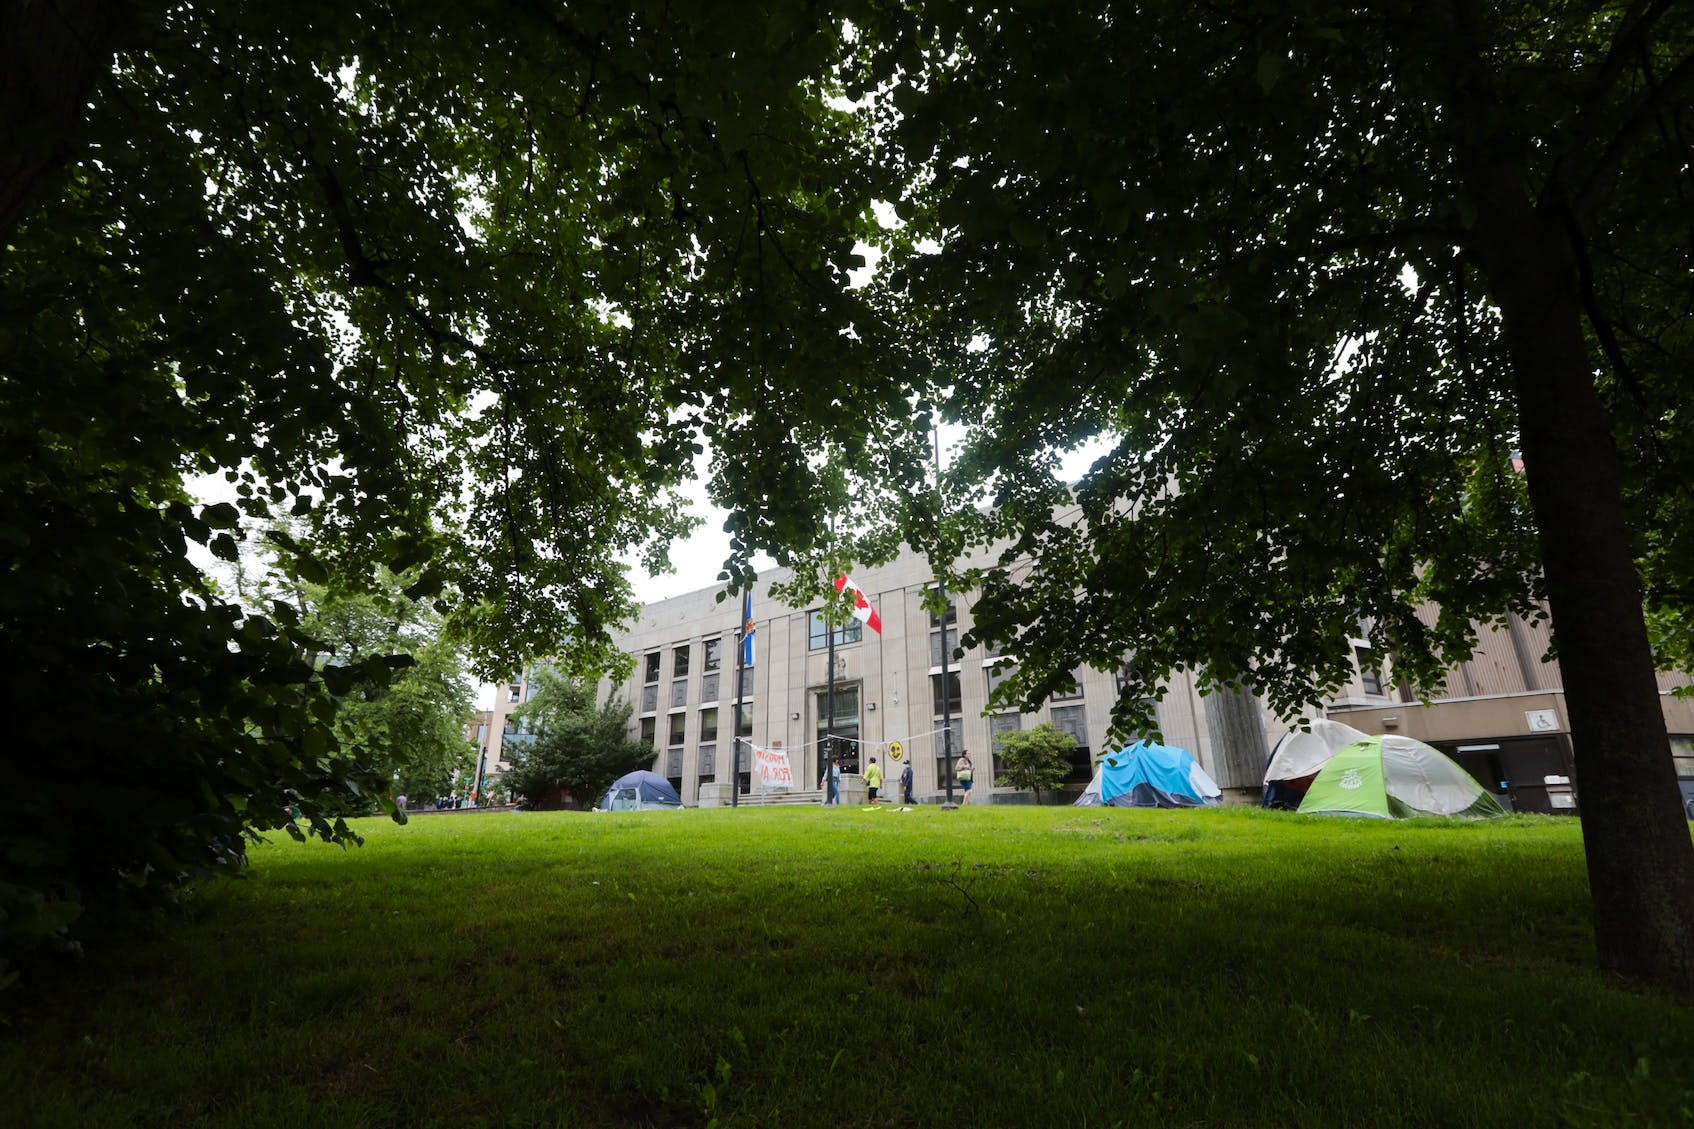 Multiple tents are seen in Halifax on July 6, 2021. According to the latest figures from the Affordable Housing Association of Nova Scotia, 393 people in HRM are currently experiencing homelessness. - Eric Wynne / File